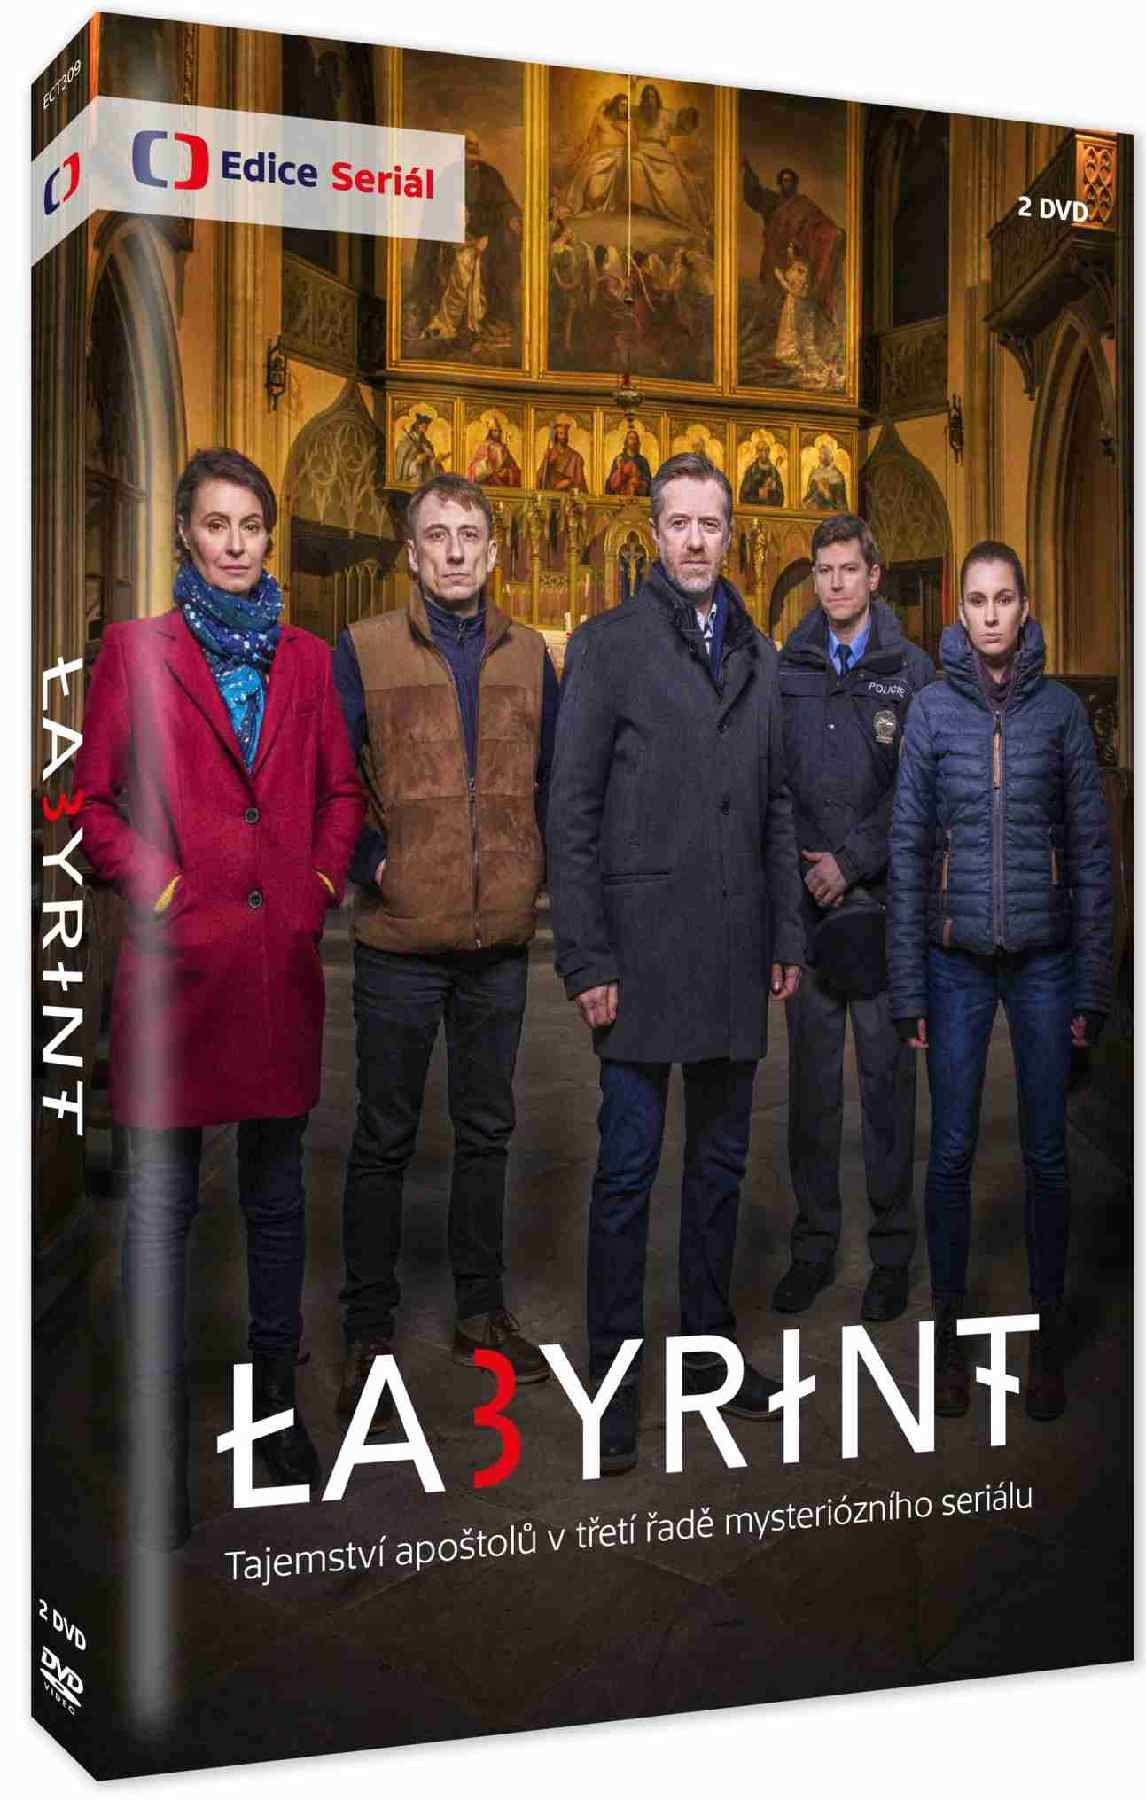 Labyrint III - DVD (2 DVD)